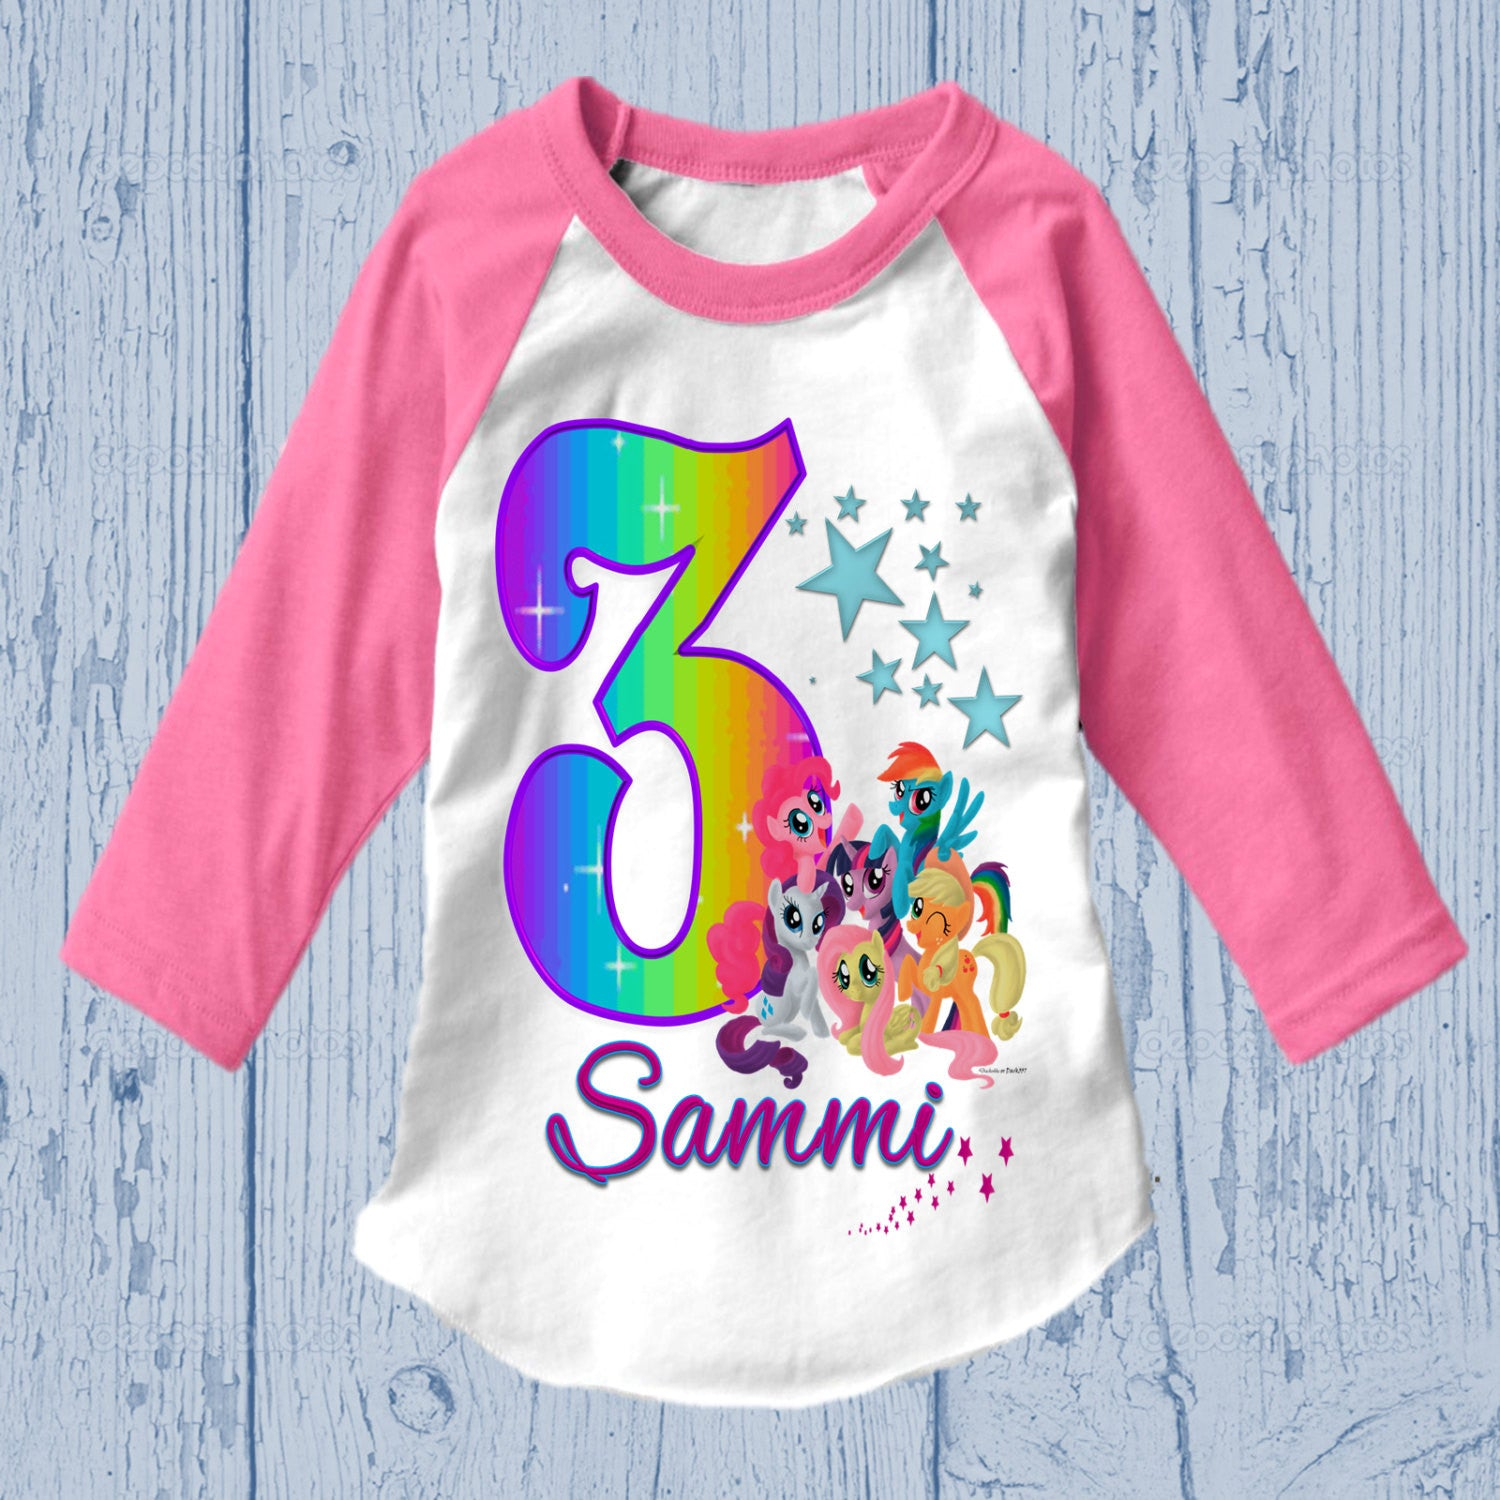 Toddler Birthday Shirts Near Me